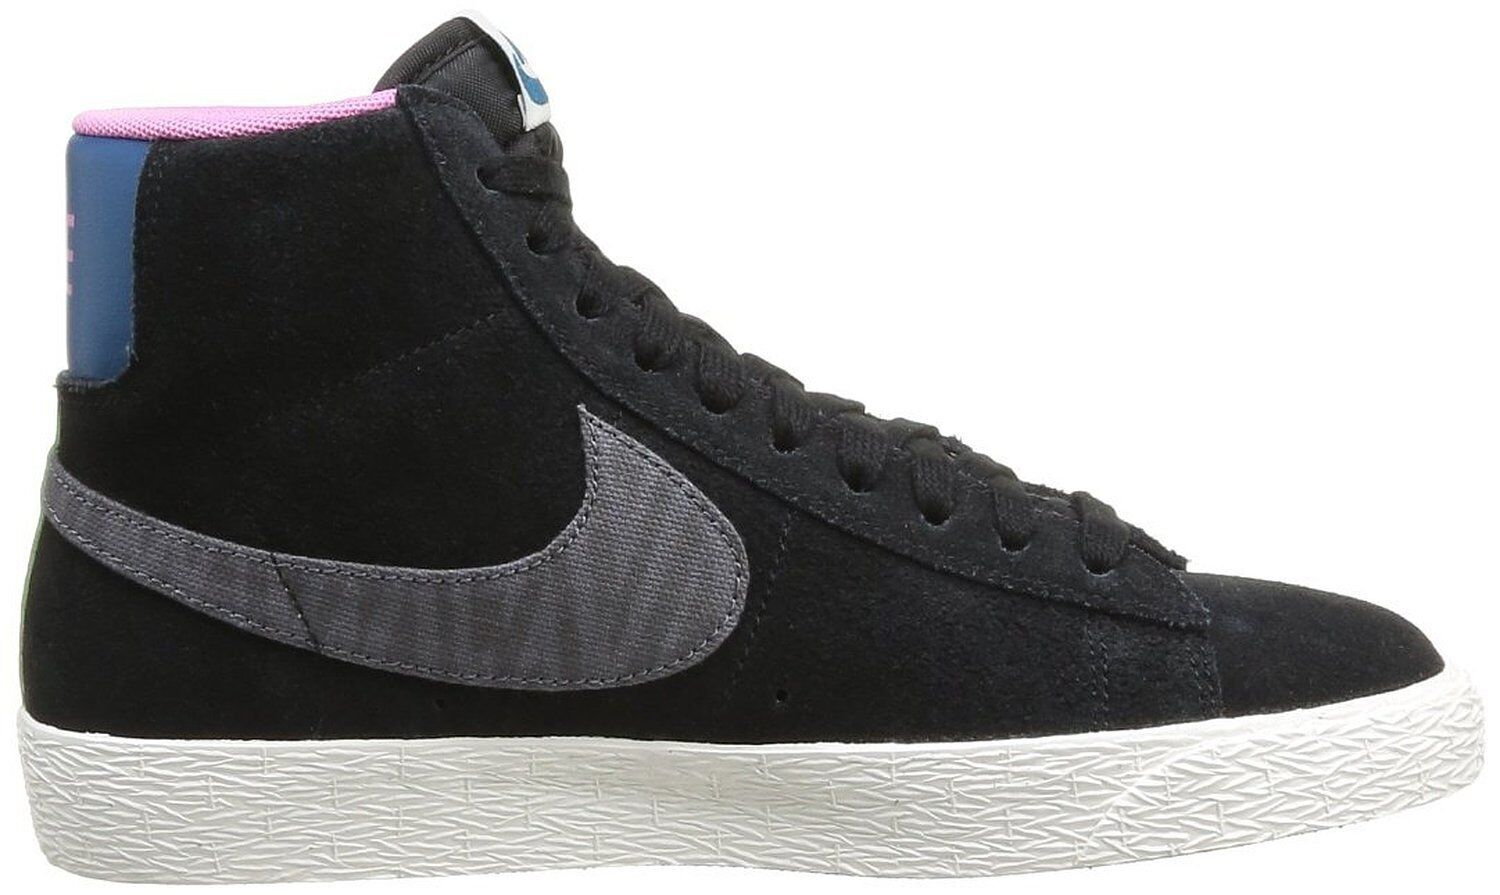 Nike WMNS Blazer Suede Black 586304-003 Women's Shoes Sneakers NEW IN BOX